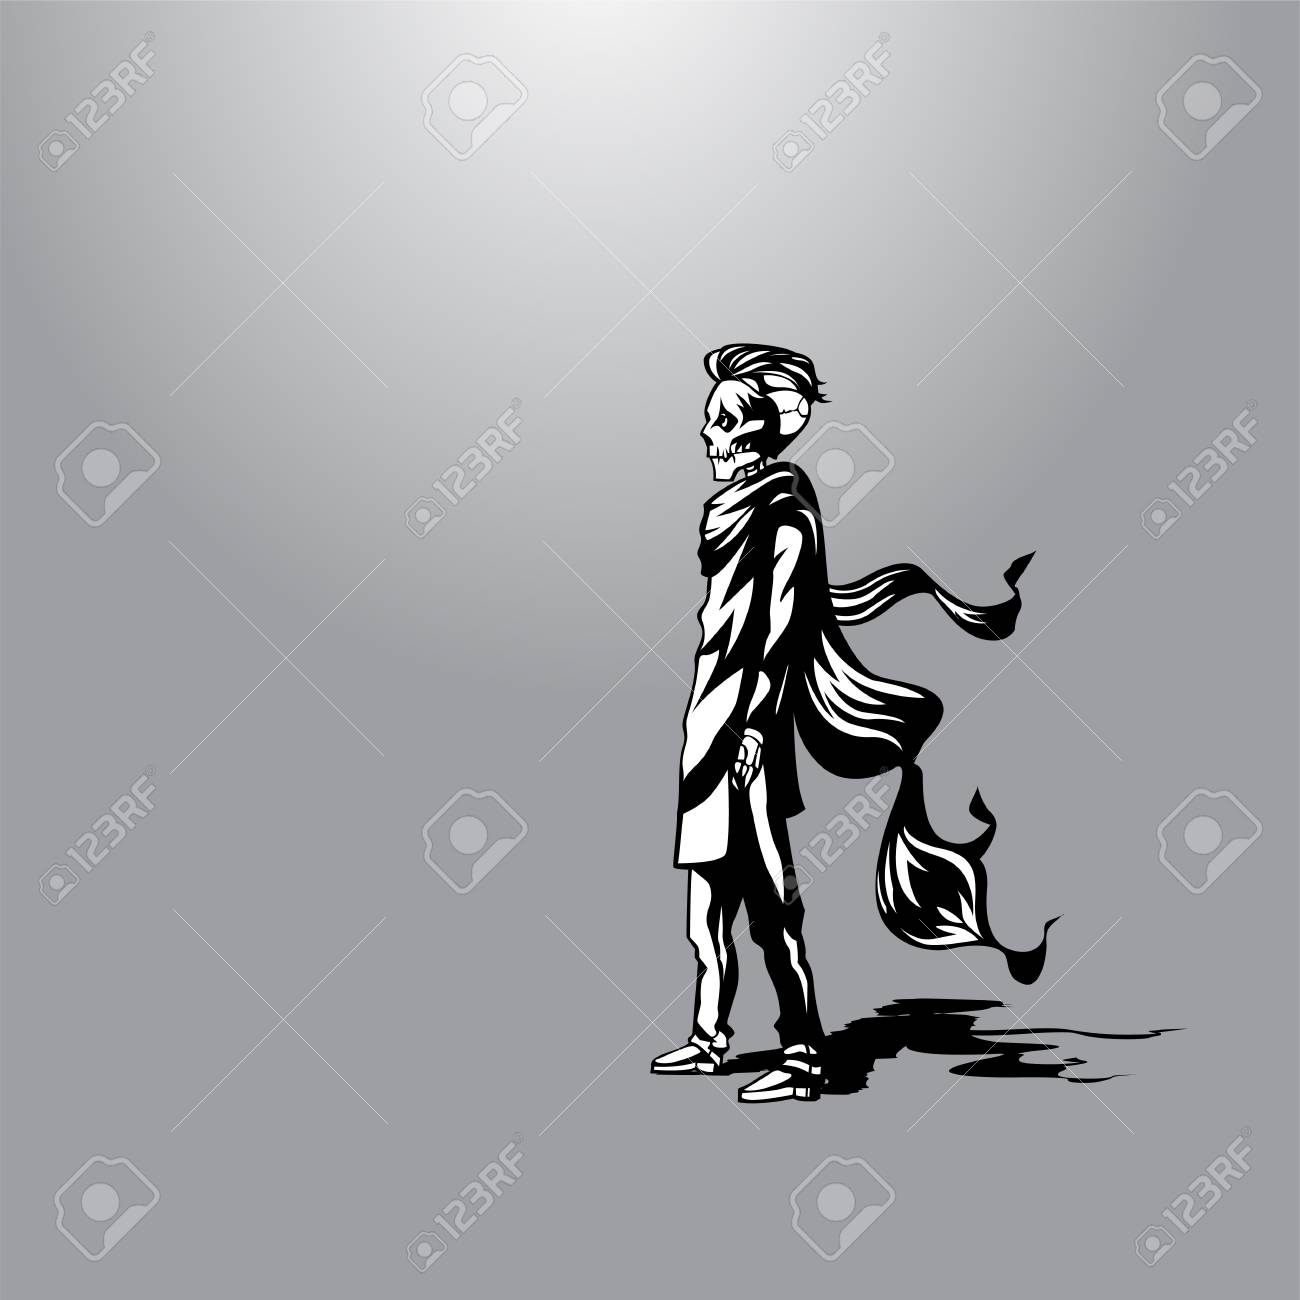 waiting for death vector illustration royalty free cliparts vectors and stock illustration image 95742212 waiting for death vector illustration